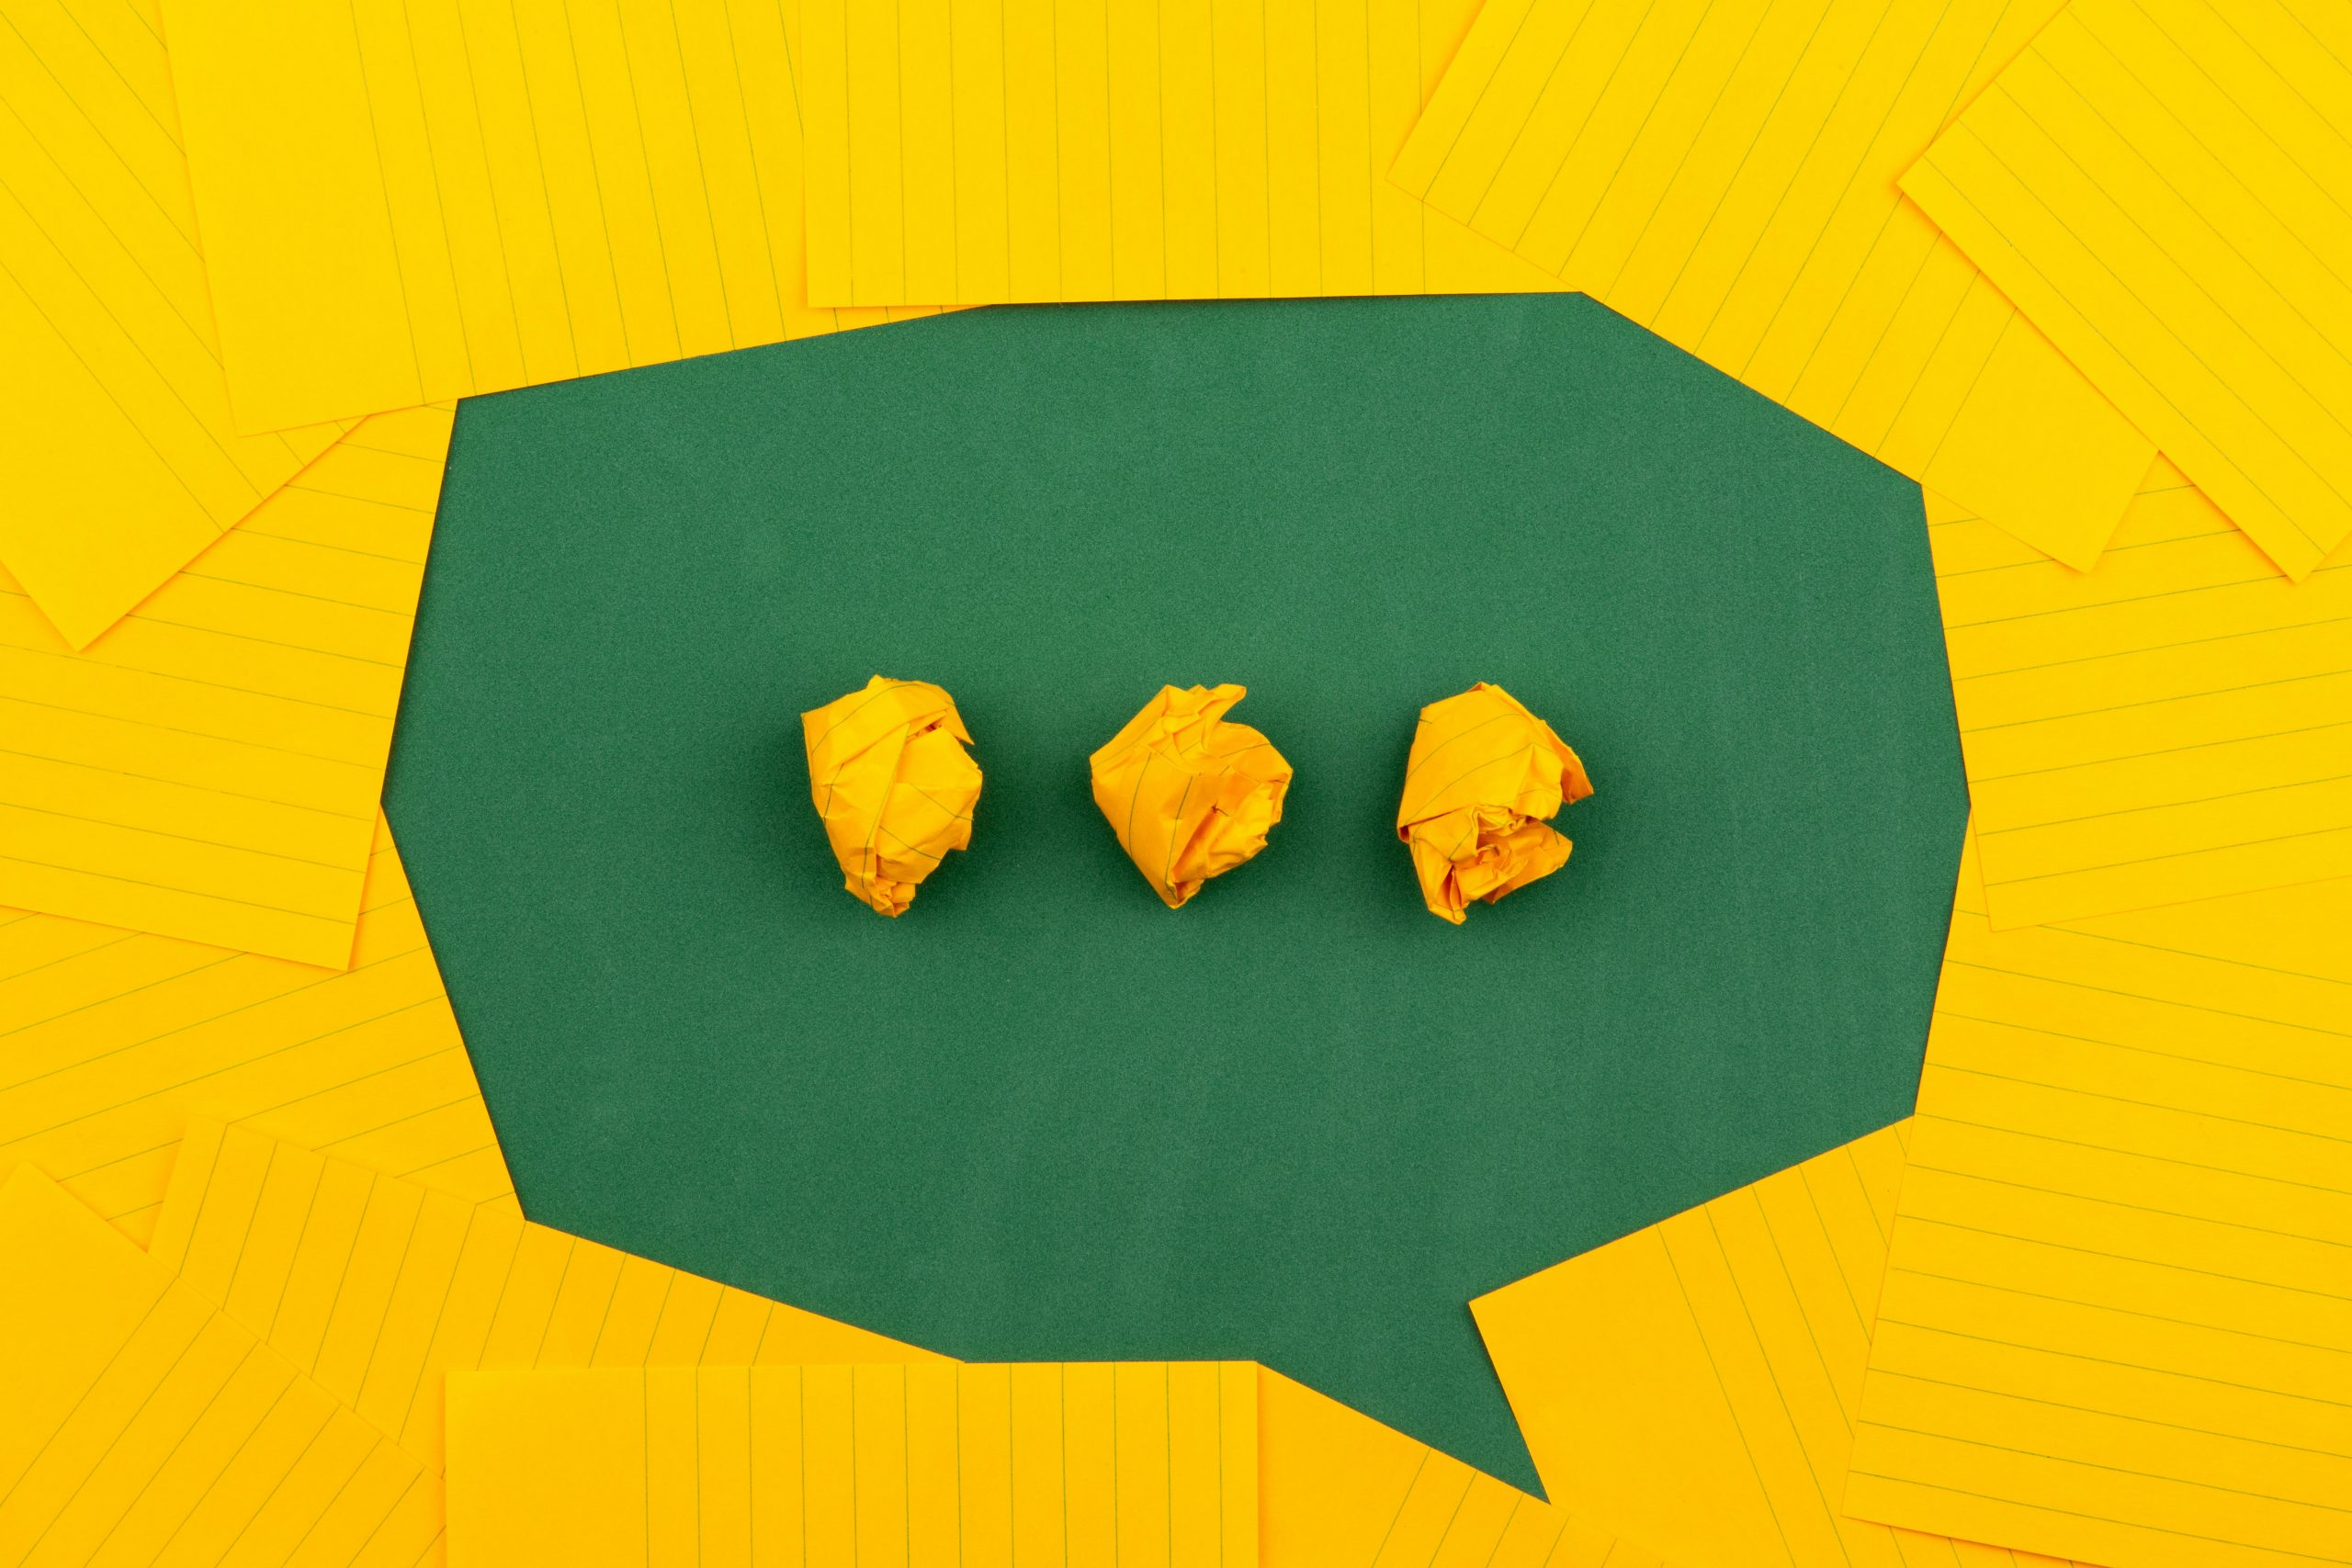 a green speech bubble made out of yellow paper